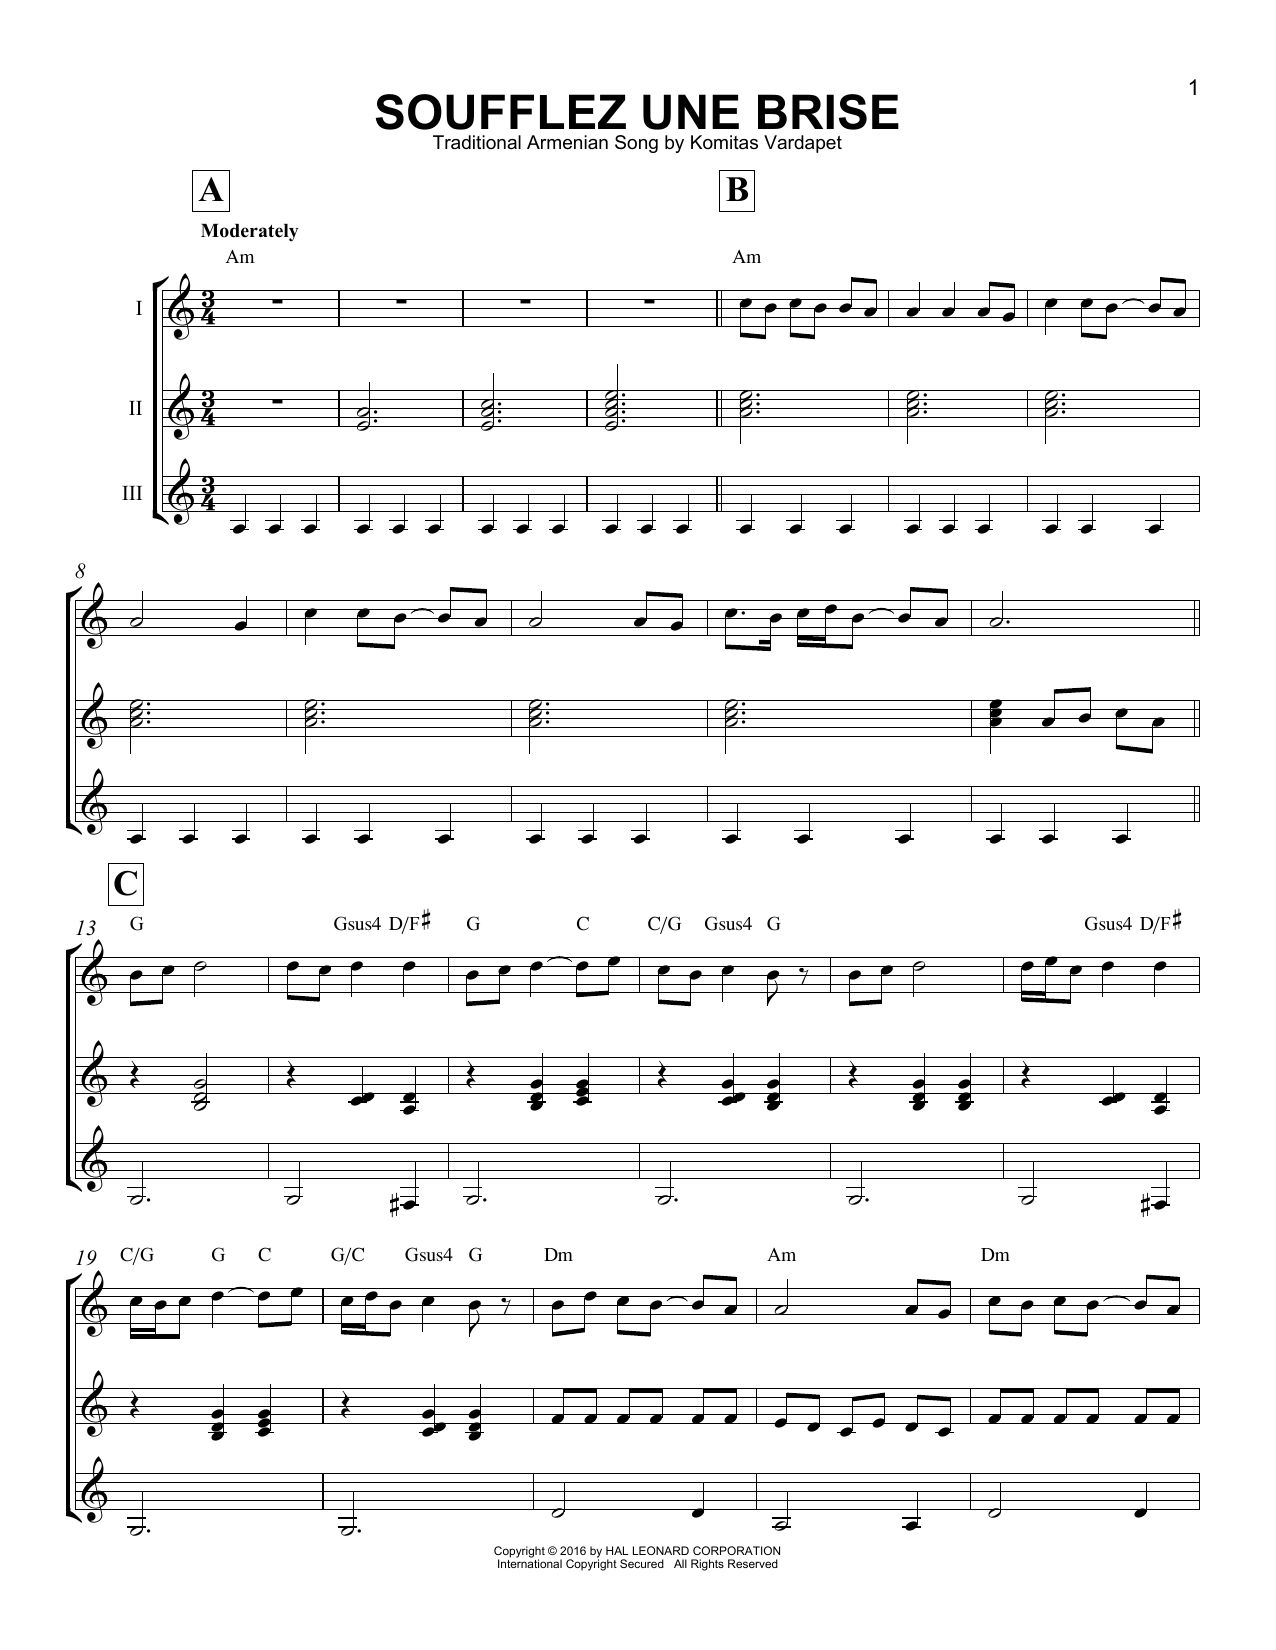 Traditional Armenian Song Soufflez Une Brise sheet music notes and chords - download printable PDF.